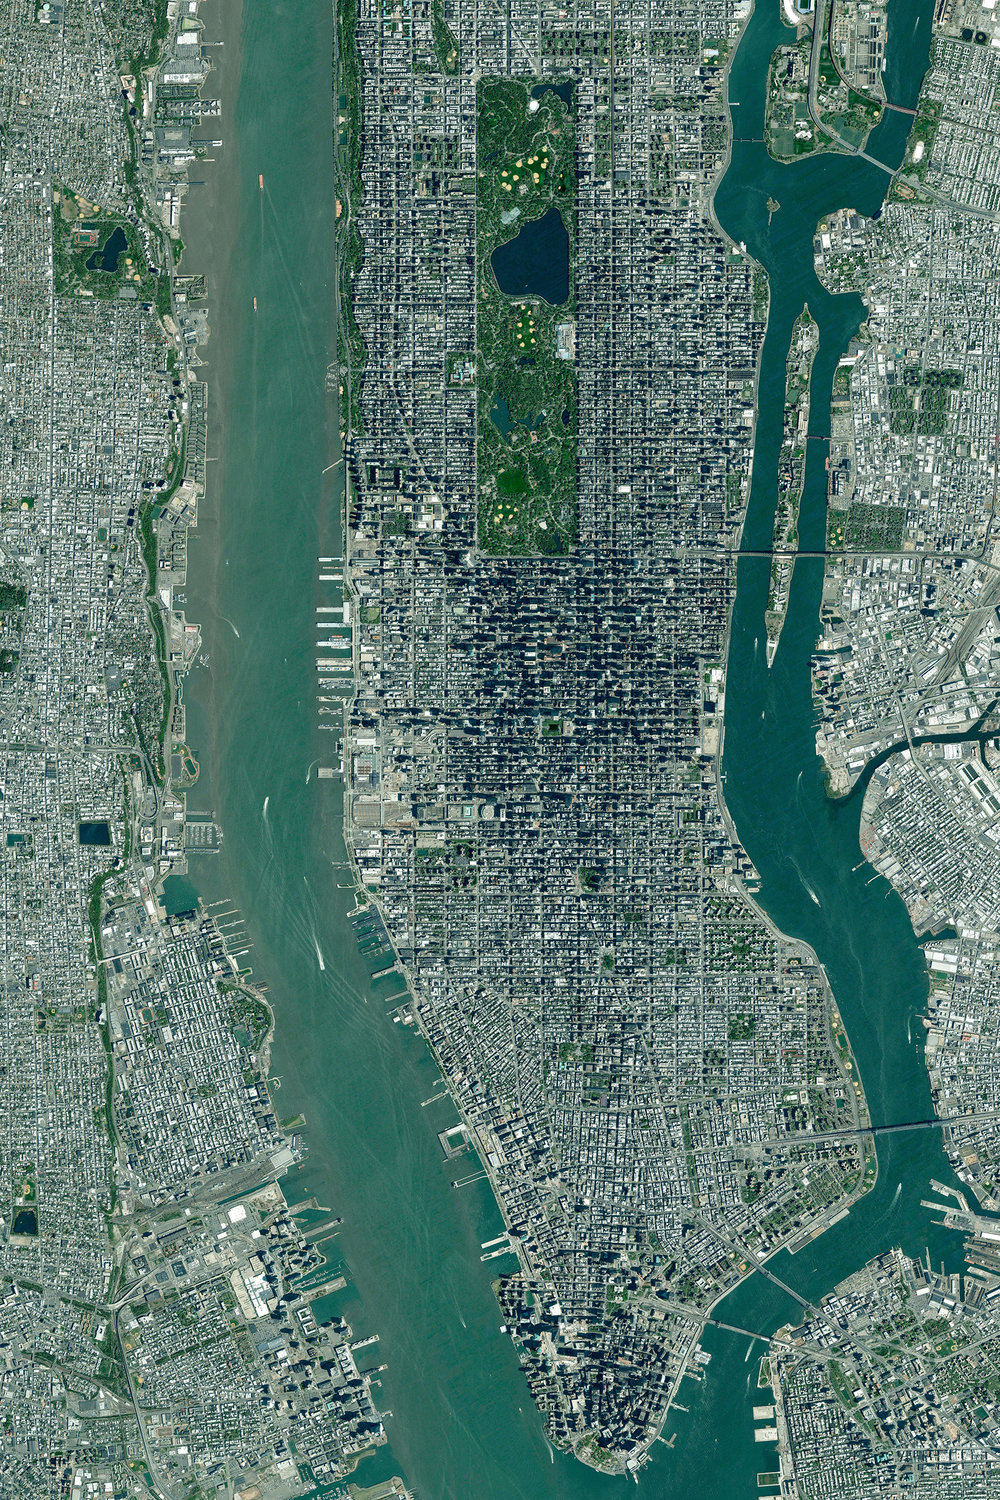 Manhattan is the most densely populated borough in New York City and is home to roughly 1.6 million people. With an area of nearly 23 square miles, there are approximately 72,000 people for every square mile. This Overview is now available in our  PRINTSHOP  where we are now offering 20% OFF all prints with coupon code 'HOLIDAY20'.  40°47′25″N 73°57′35″W